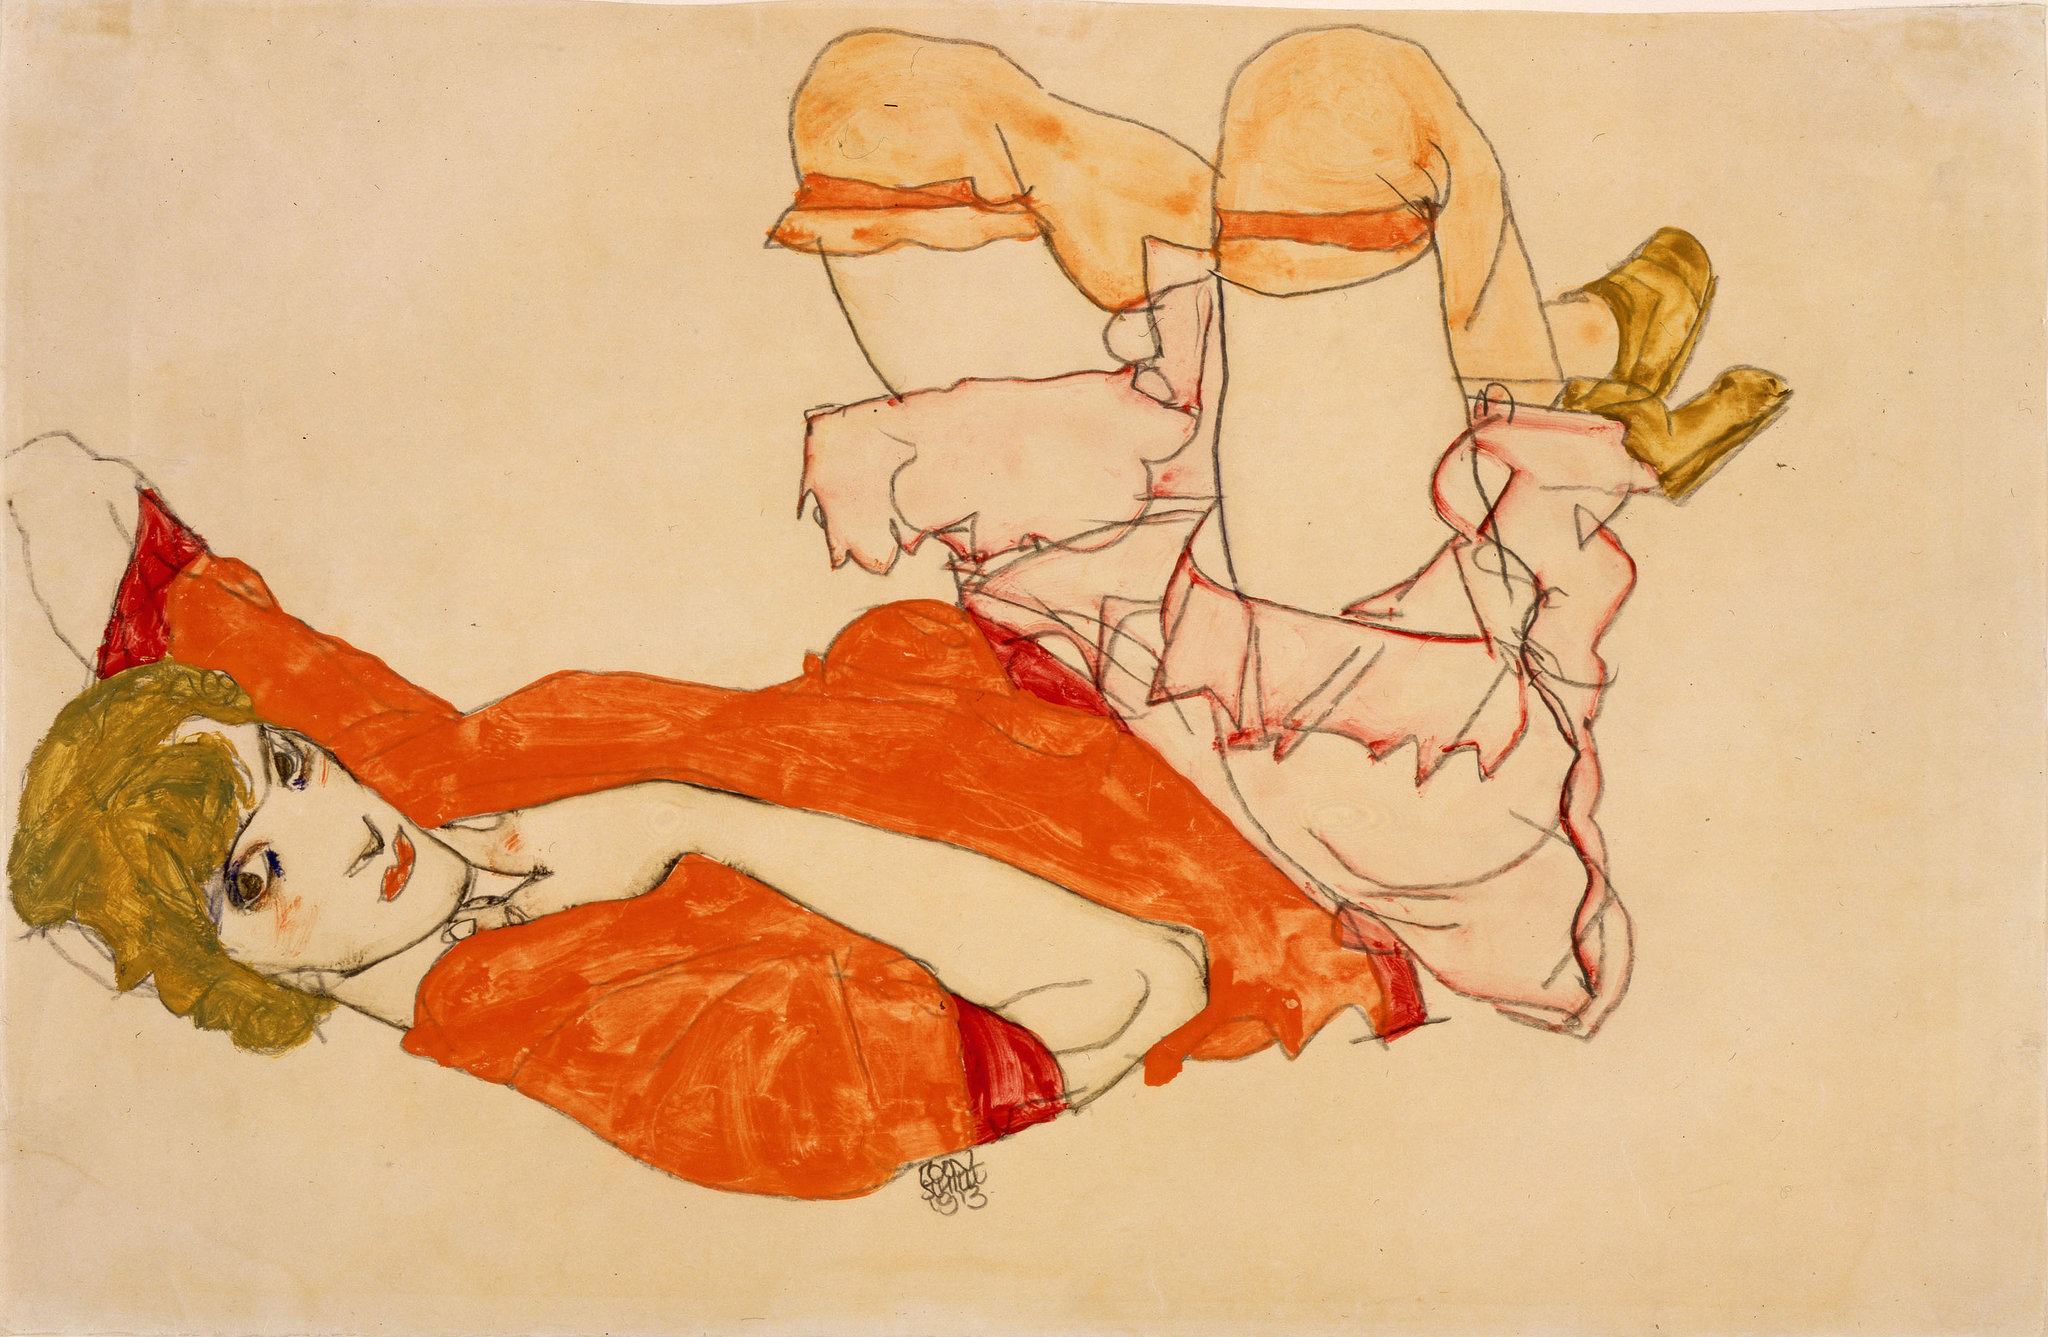 New Digital Archive Will Feature the Complete Works of Egon Schiele: Start with 419 Paintings, Drawings & Sculptures Artes & contextos egon schiele